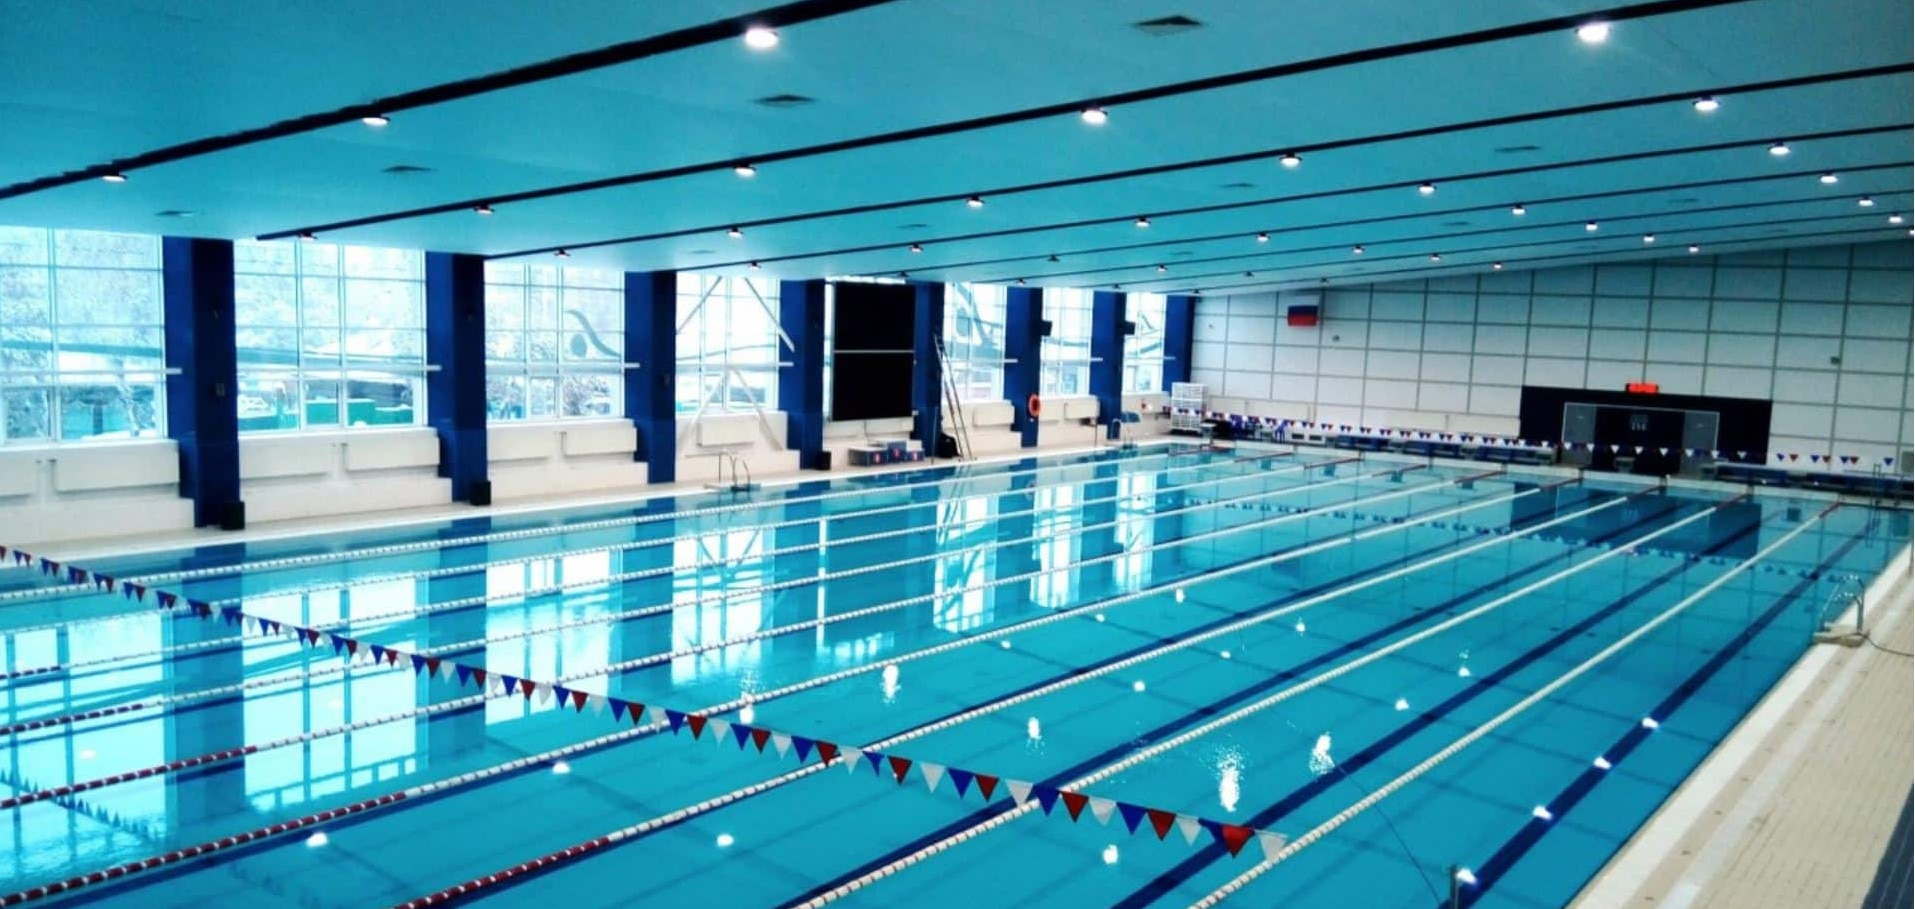 Commercial Natatorium Pool Lighting Design Guide